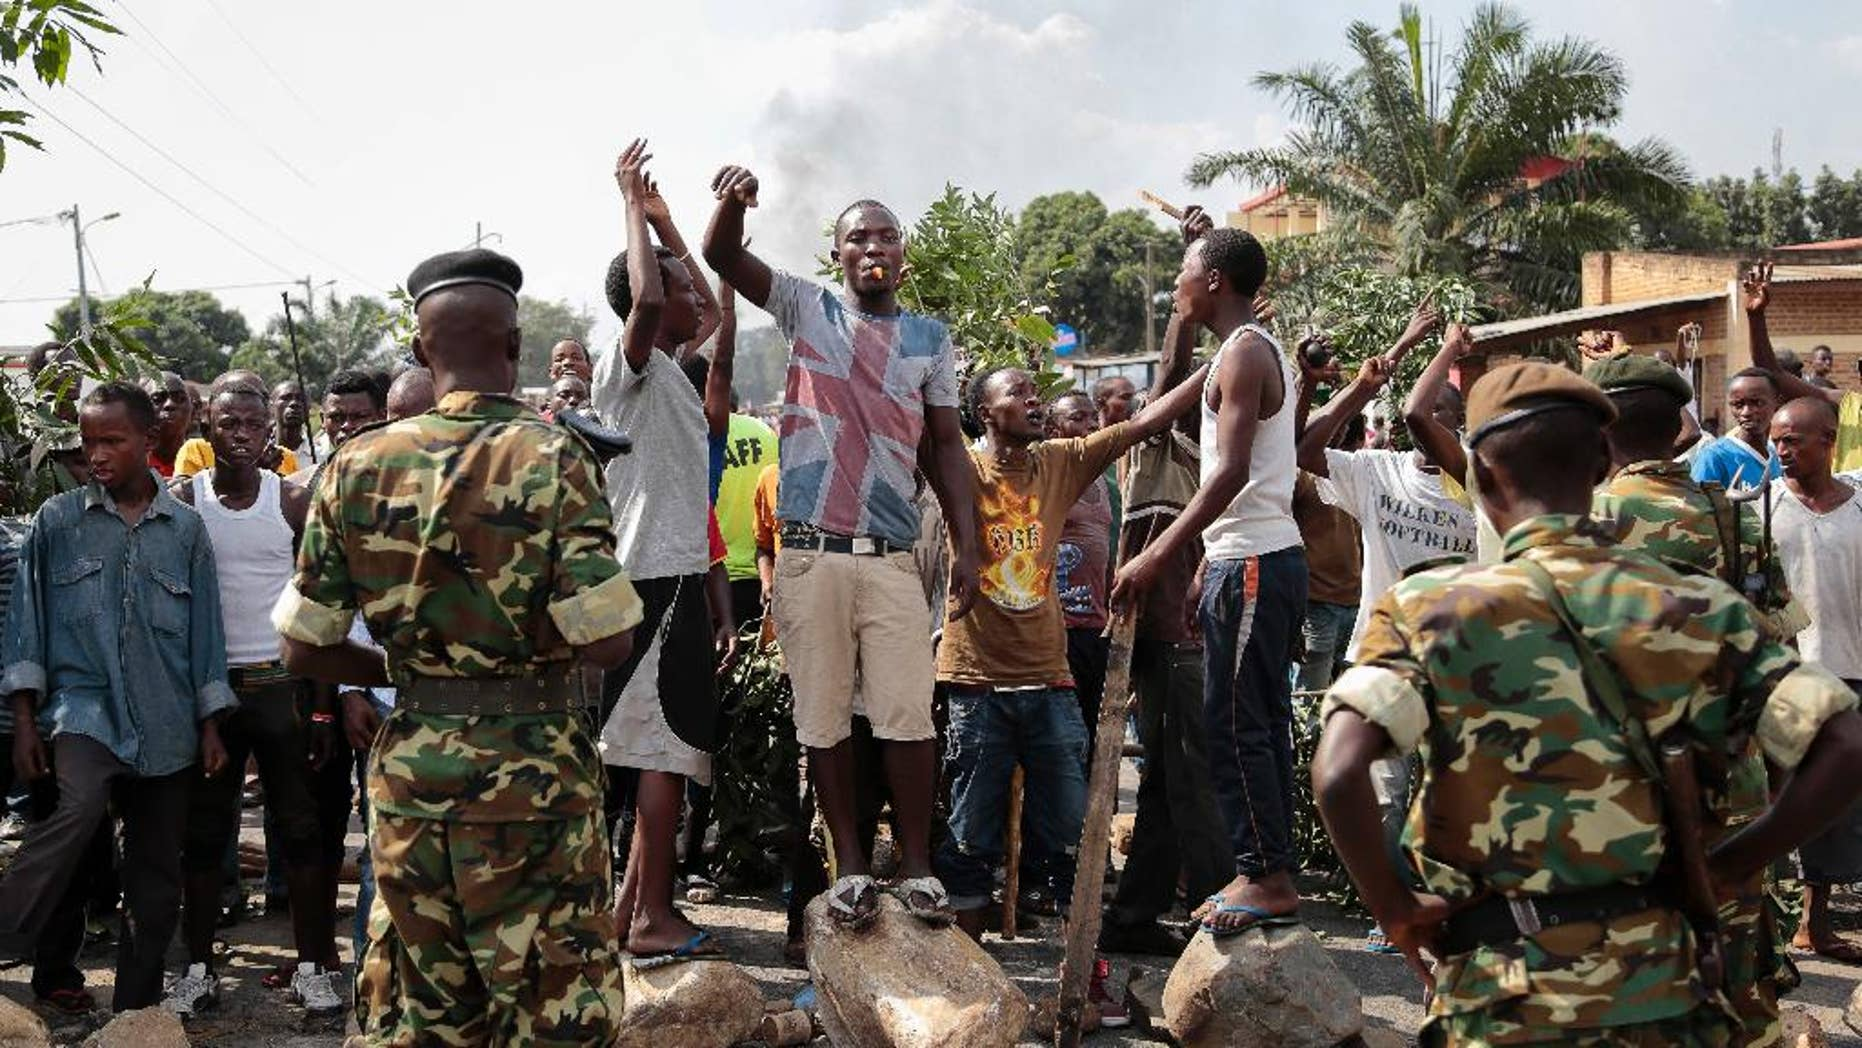 FILE - In this May 27, 2015 file photo, opposition demonstrators confront army soldiers in the Mutarakura district, as security forces try to prevent people moving out of their neighborhoods, in the capital Bujumbura, Burundi. A global human rights umbrella organization issued a report on Tuesday, Nov. 15, 2016, urging Africa, Europe and the United Nations to send a civilian protection force to Burundi to prevent a possible civil war and genocide. (AP Photo/Gildas Ngingo, File)